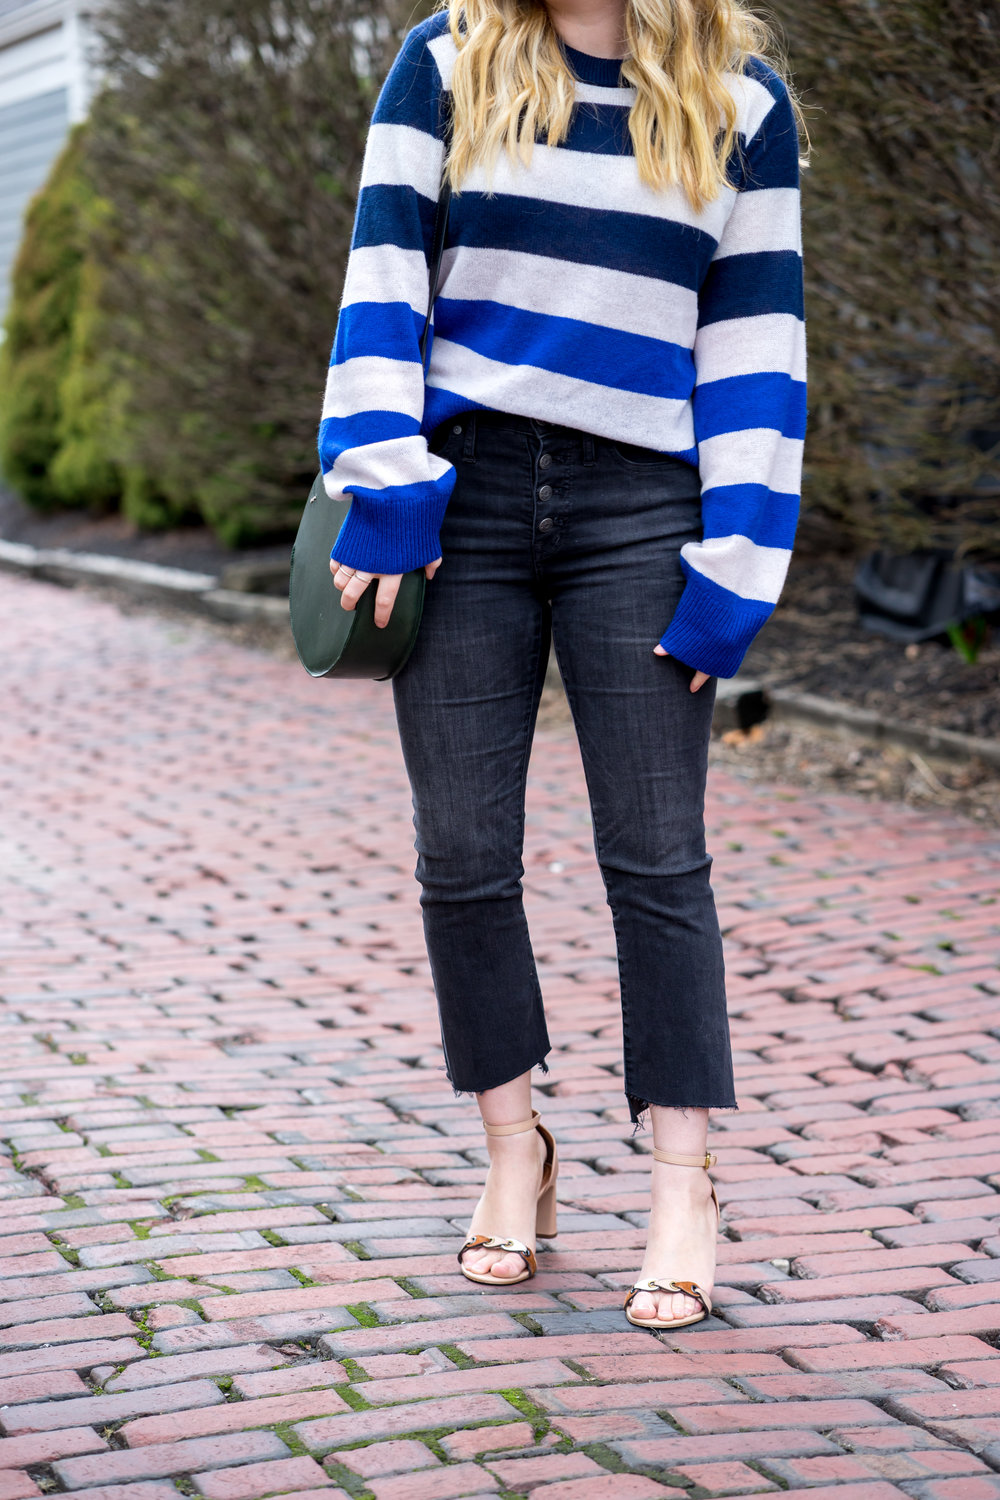 Maggie a la Mode - Yes You Can Wear Cropped Bootcut Jeans Madewell Cali Demi Boot-6.jpg